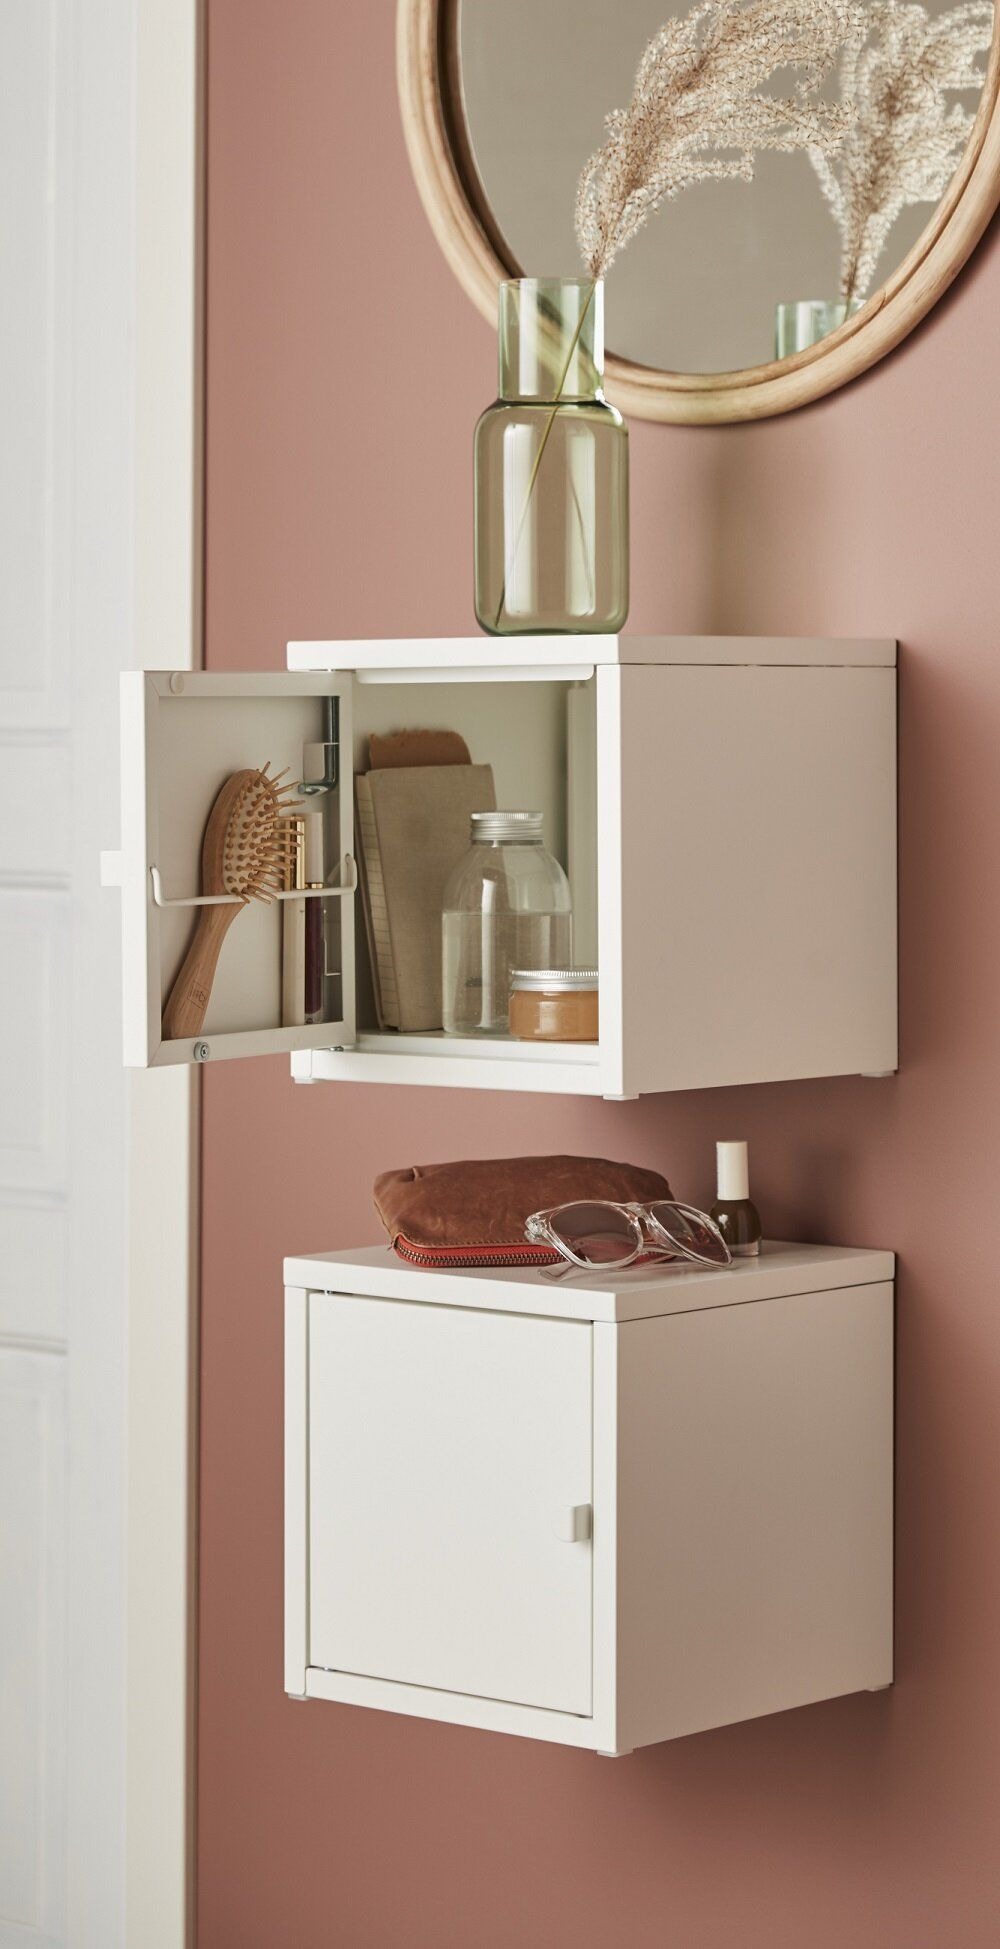 Small space organizing idea from IKEA with LIXHULT